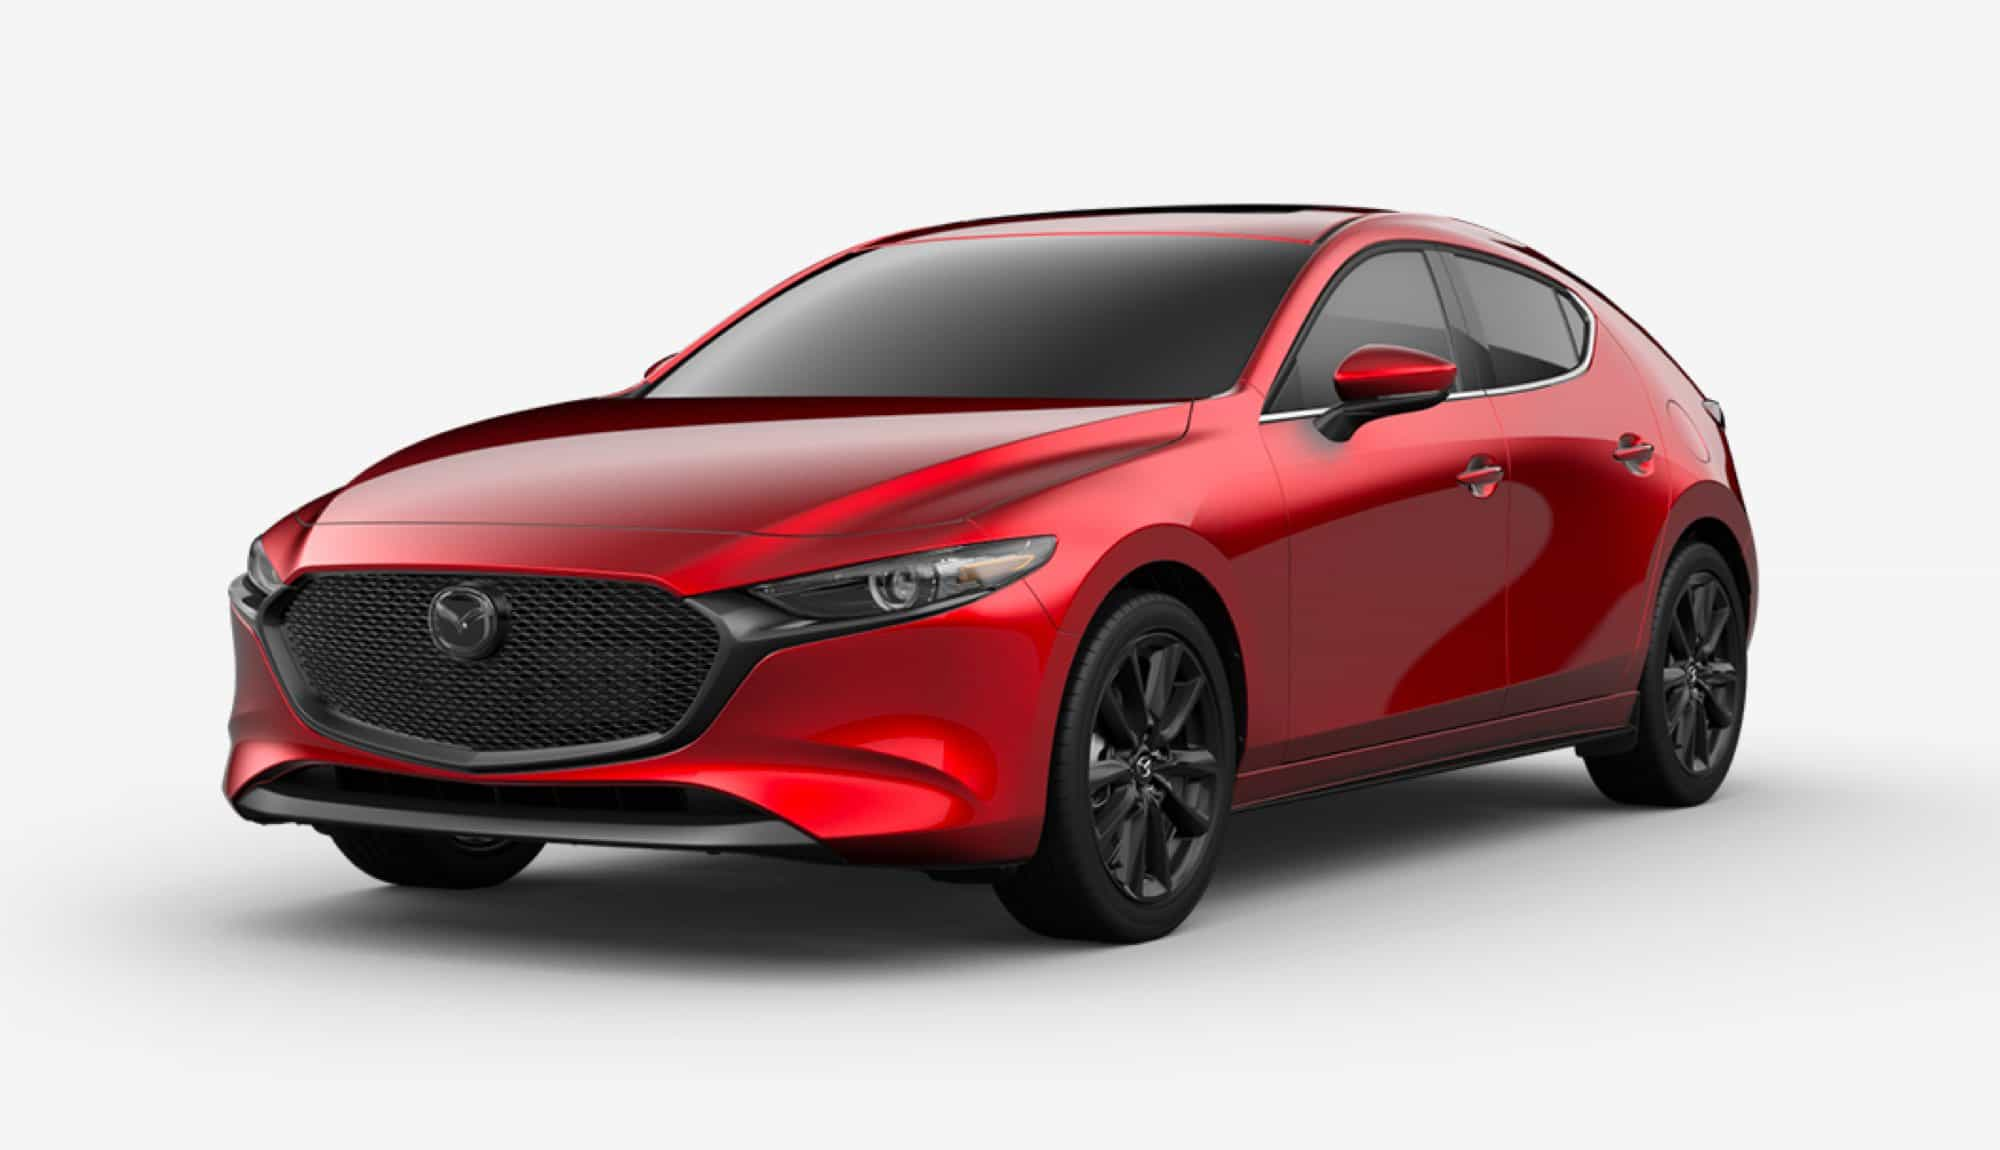 2020 Mazda3 Hatchback, Soul Red Crystal Metallic